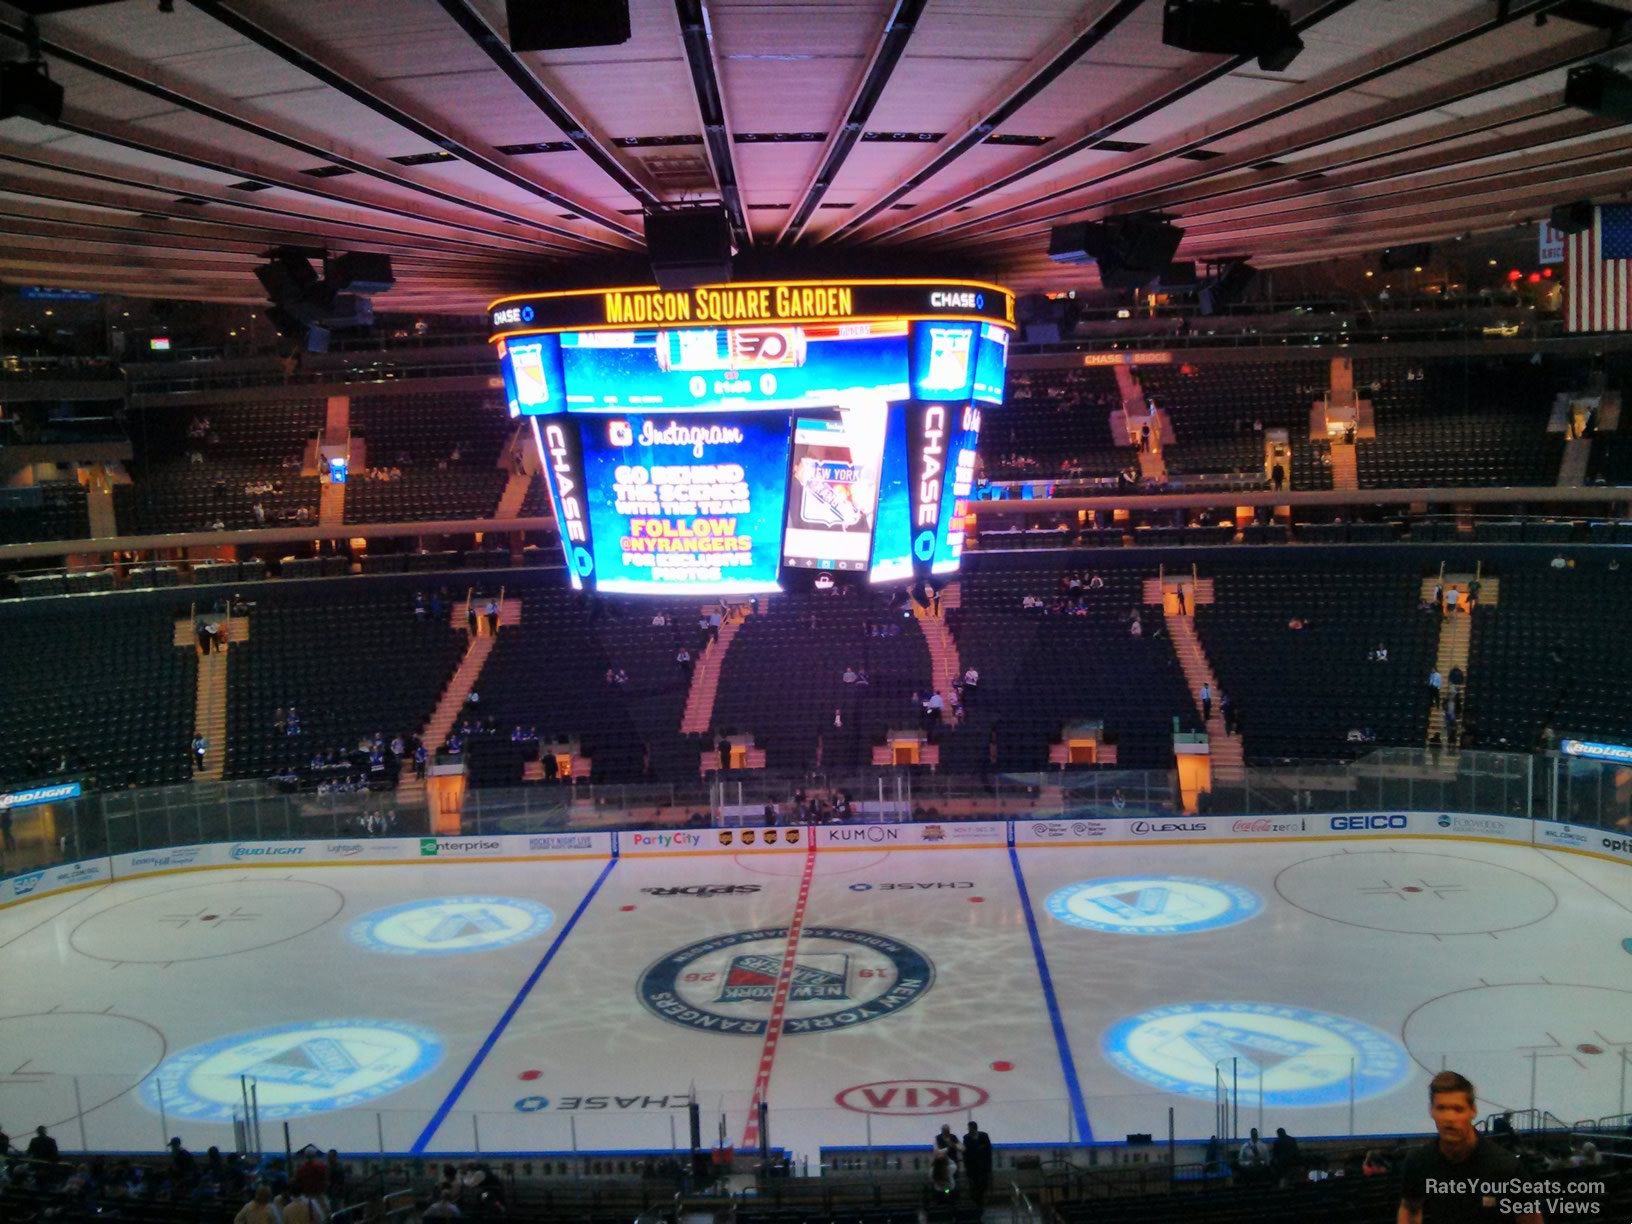 New York Rangers Seat View For Madison Square Garden Section 211, ...